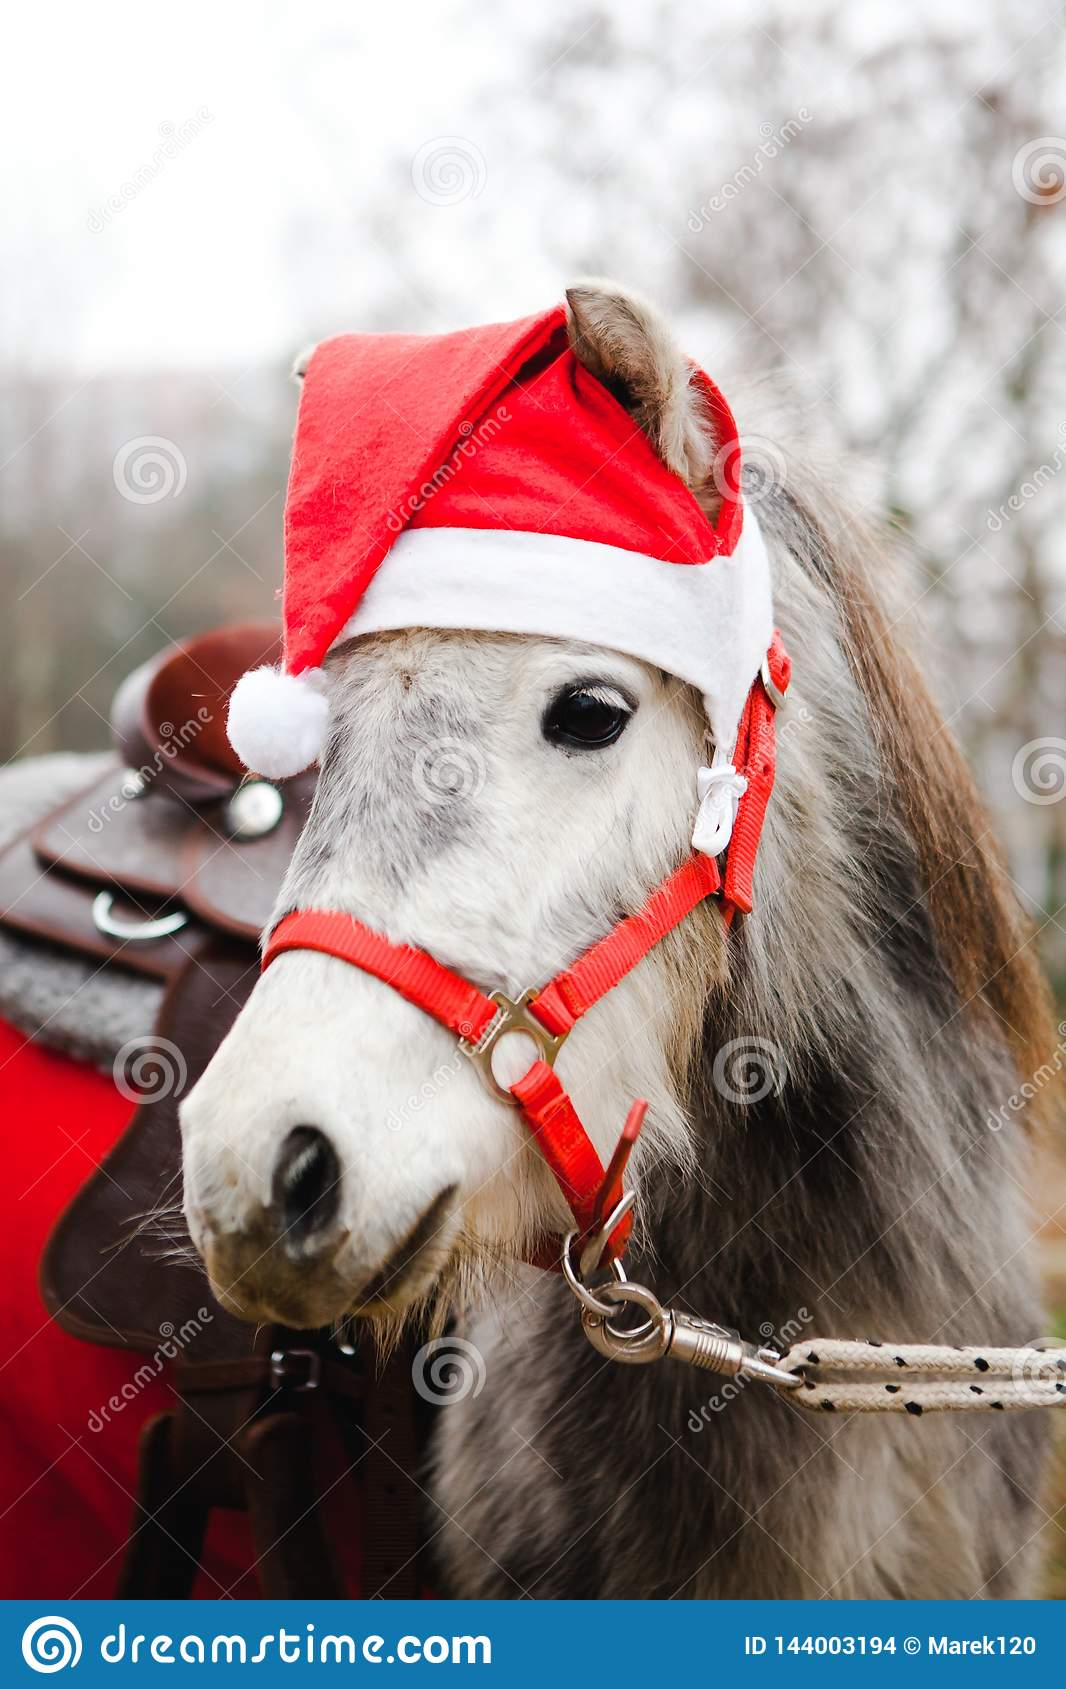 Pony In Santa Claus S Red Cup Christmas Horse Stock Photo Image Of Closeup Wearing 144003194